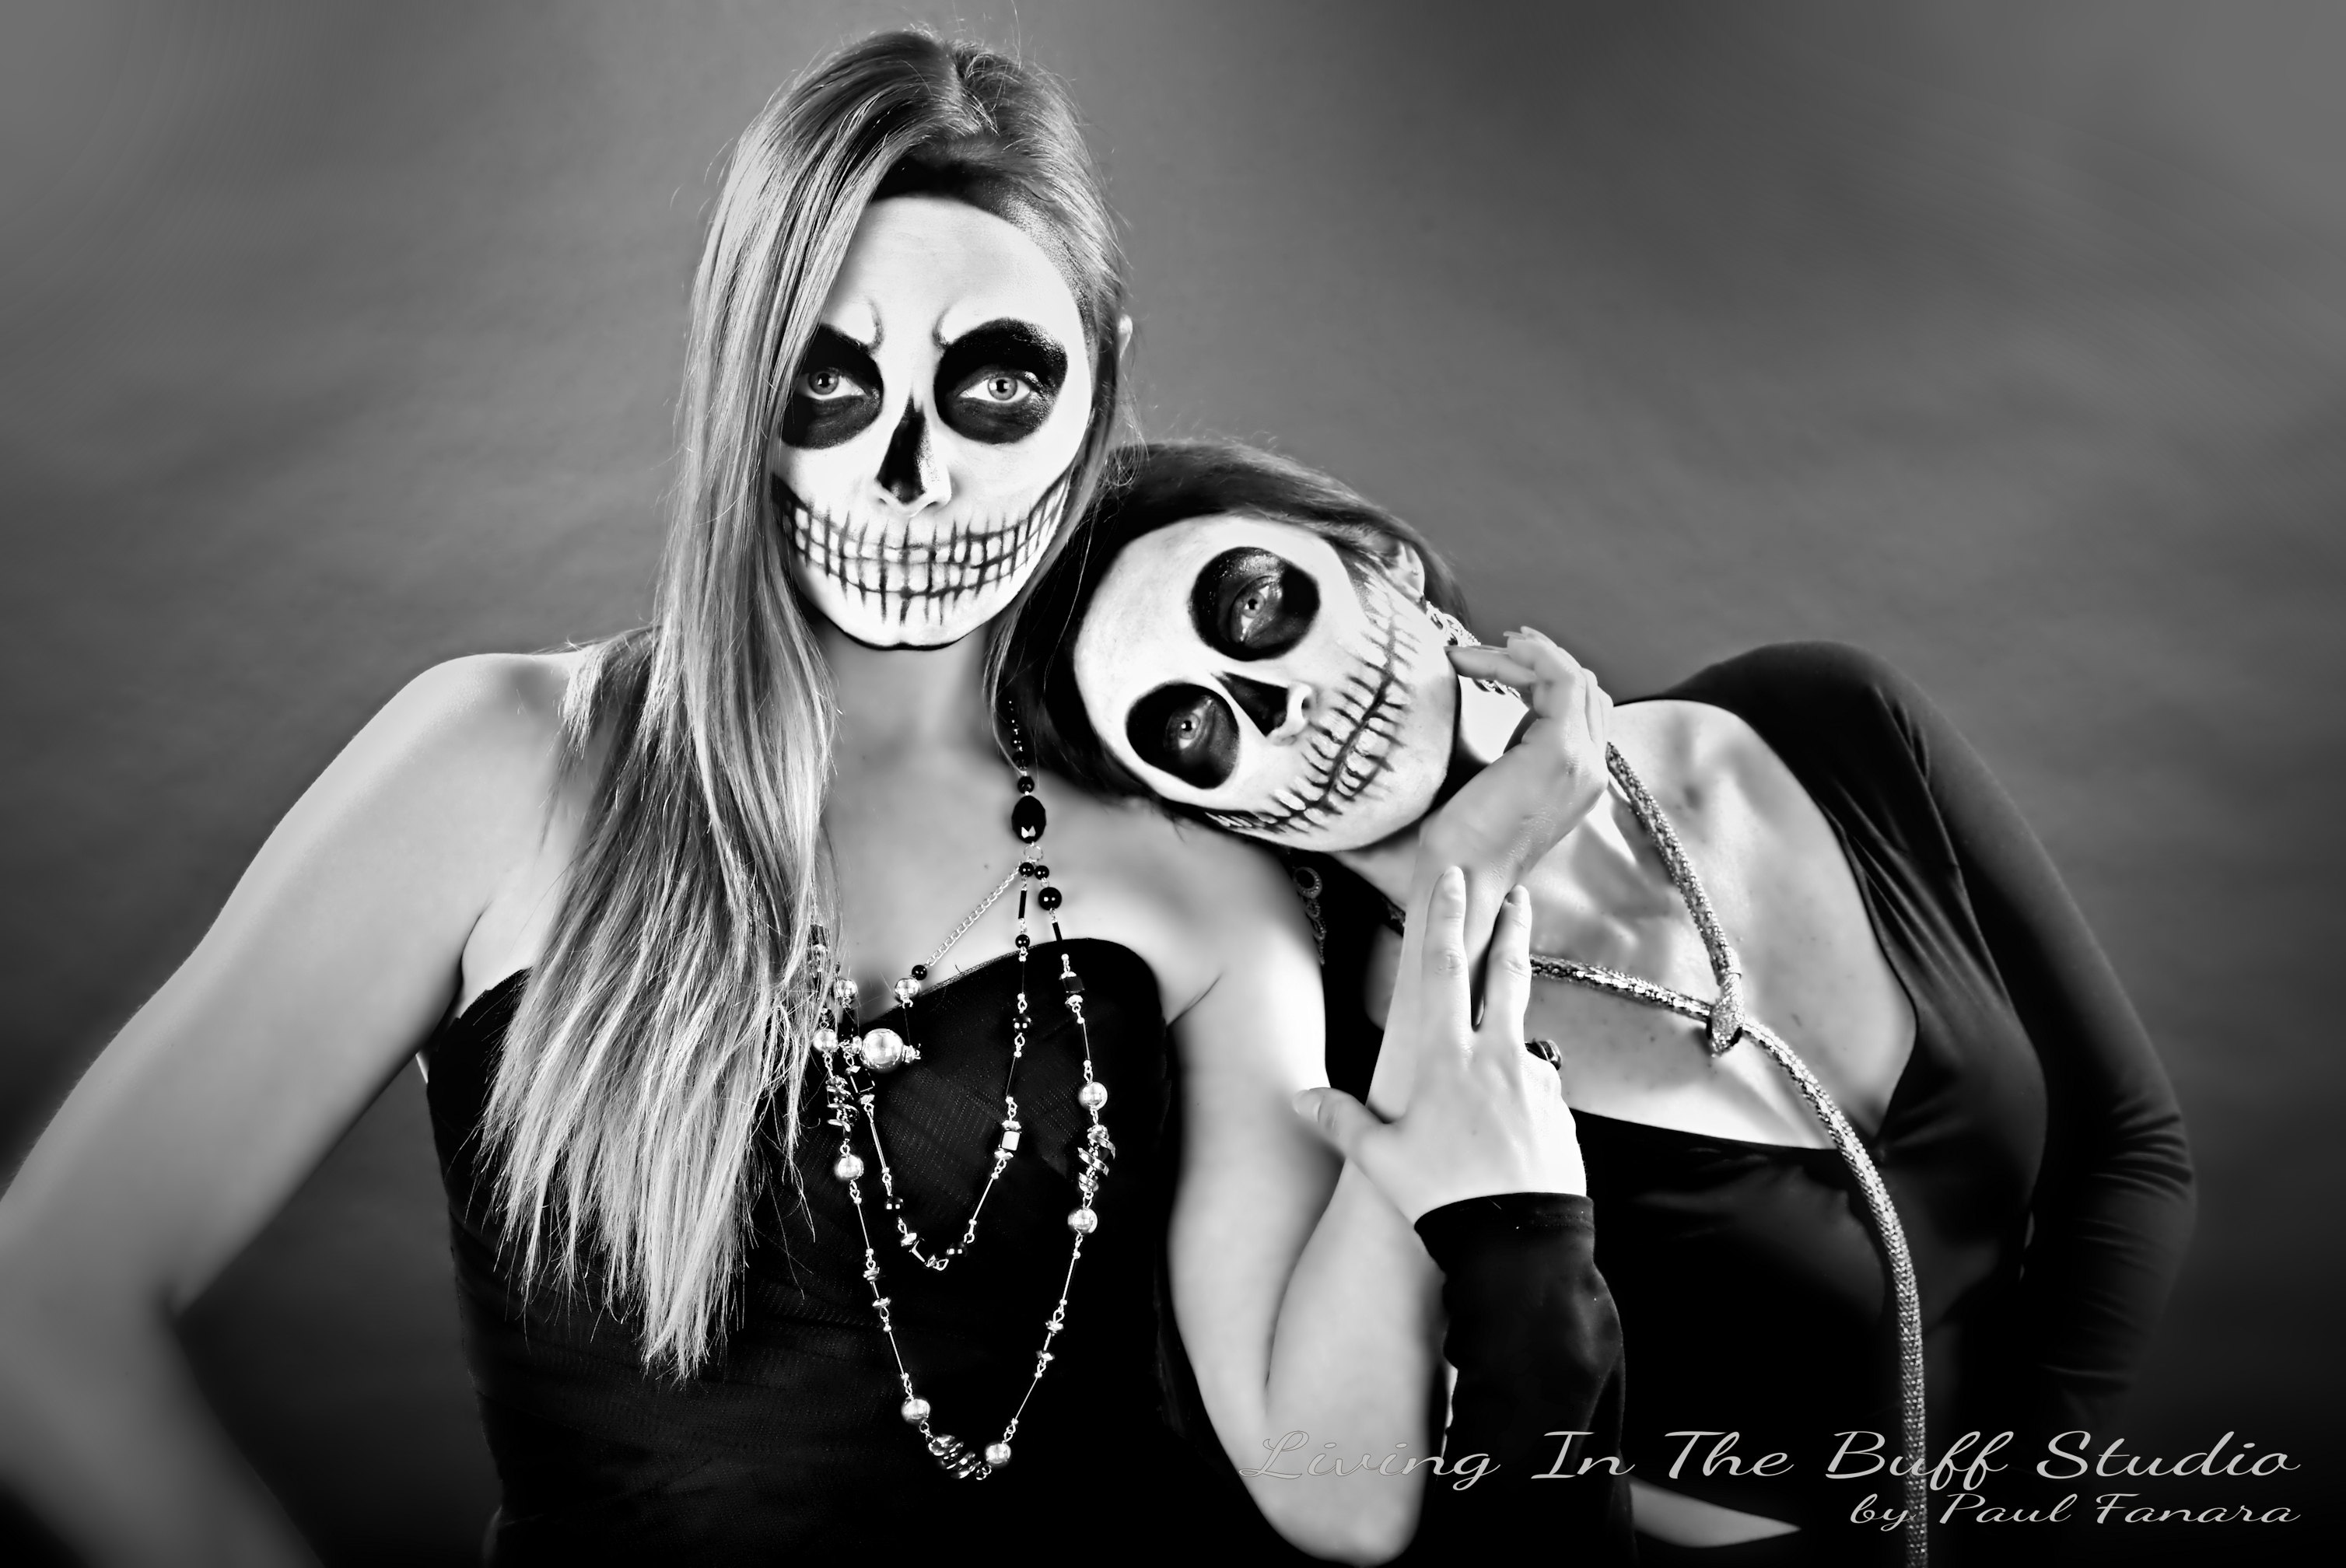 Promo shoot for Buffalo's Witches Ball - Featuring Jessica and Cortney